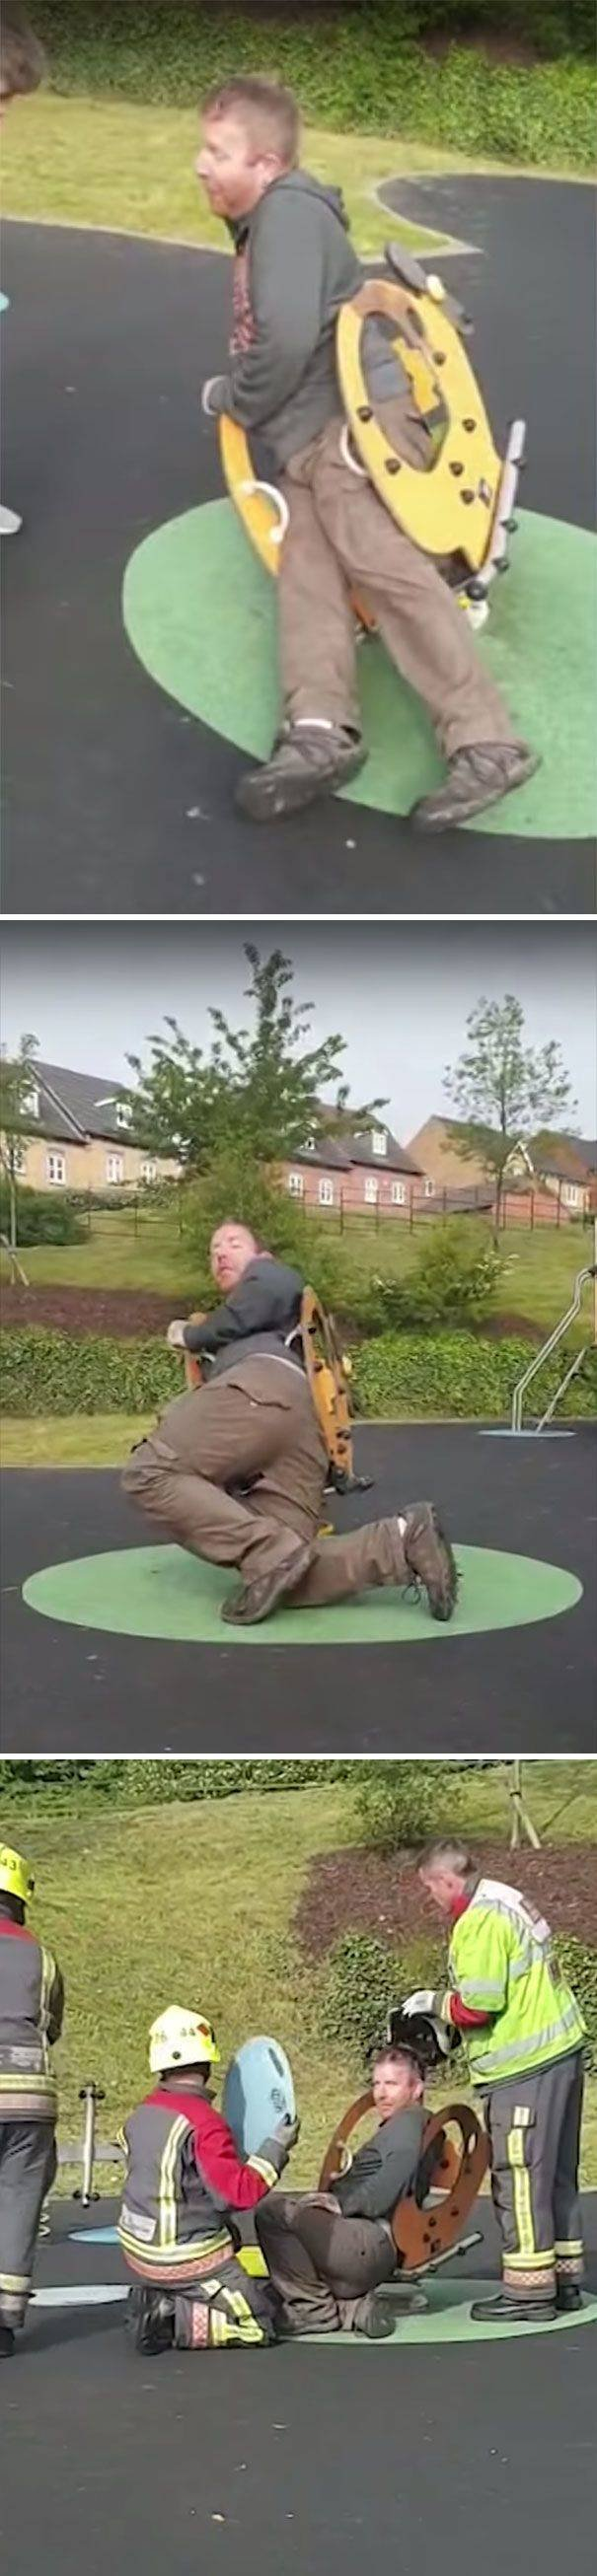 Adults At Childrens' Playgrounds (36 pics)